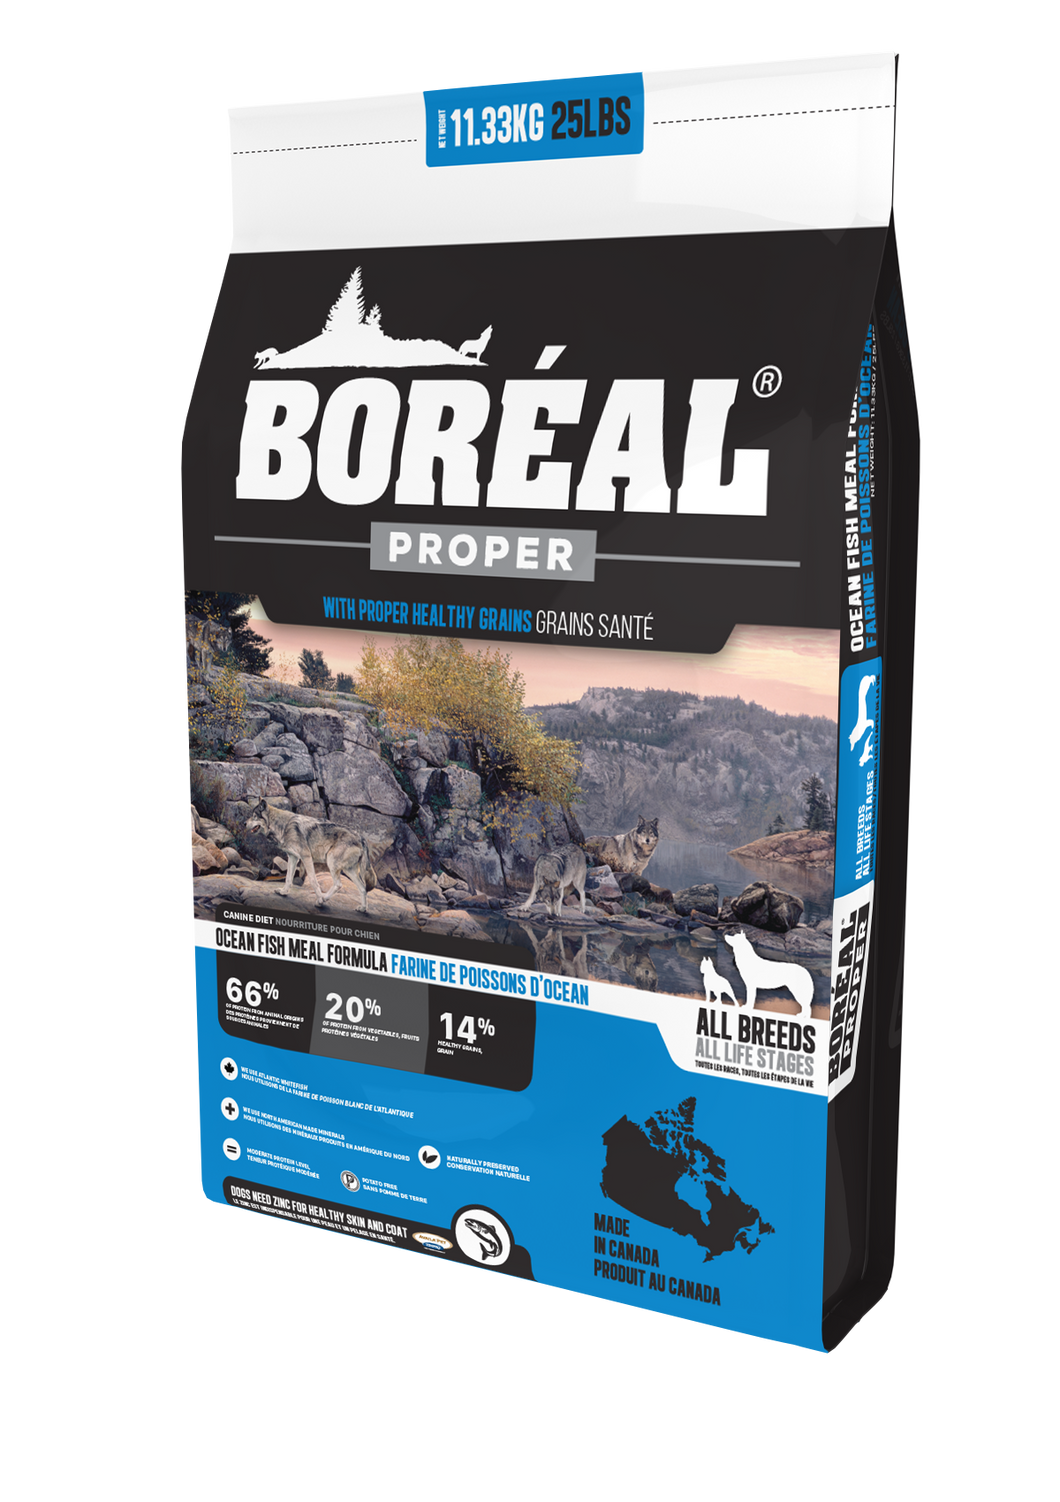 Boréal - Proper Ocean Fish Meal Low Carb Grain Inclusive Dog Food - Low Glycemic - All Breed - North American Minerals - Potato Free - Moderate Protein - Made in Canada